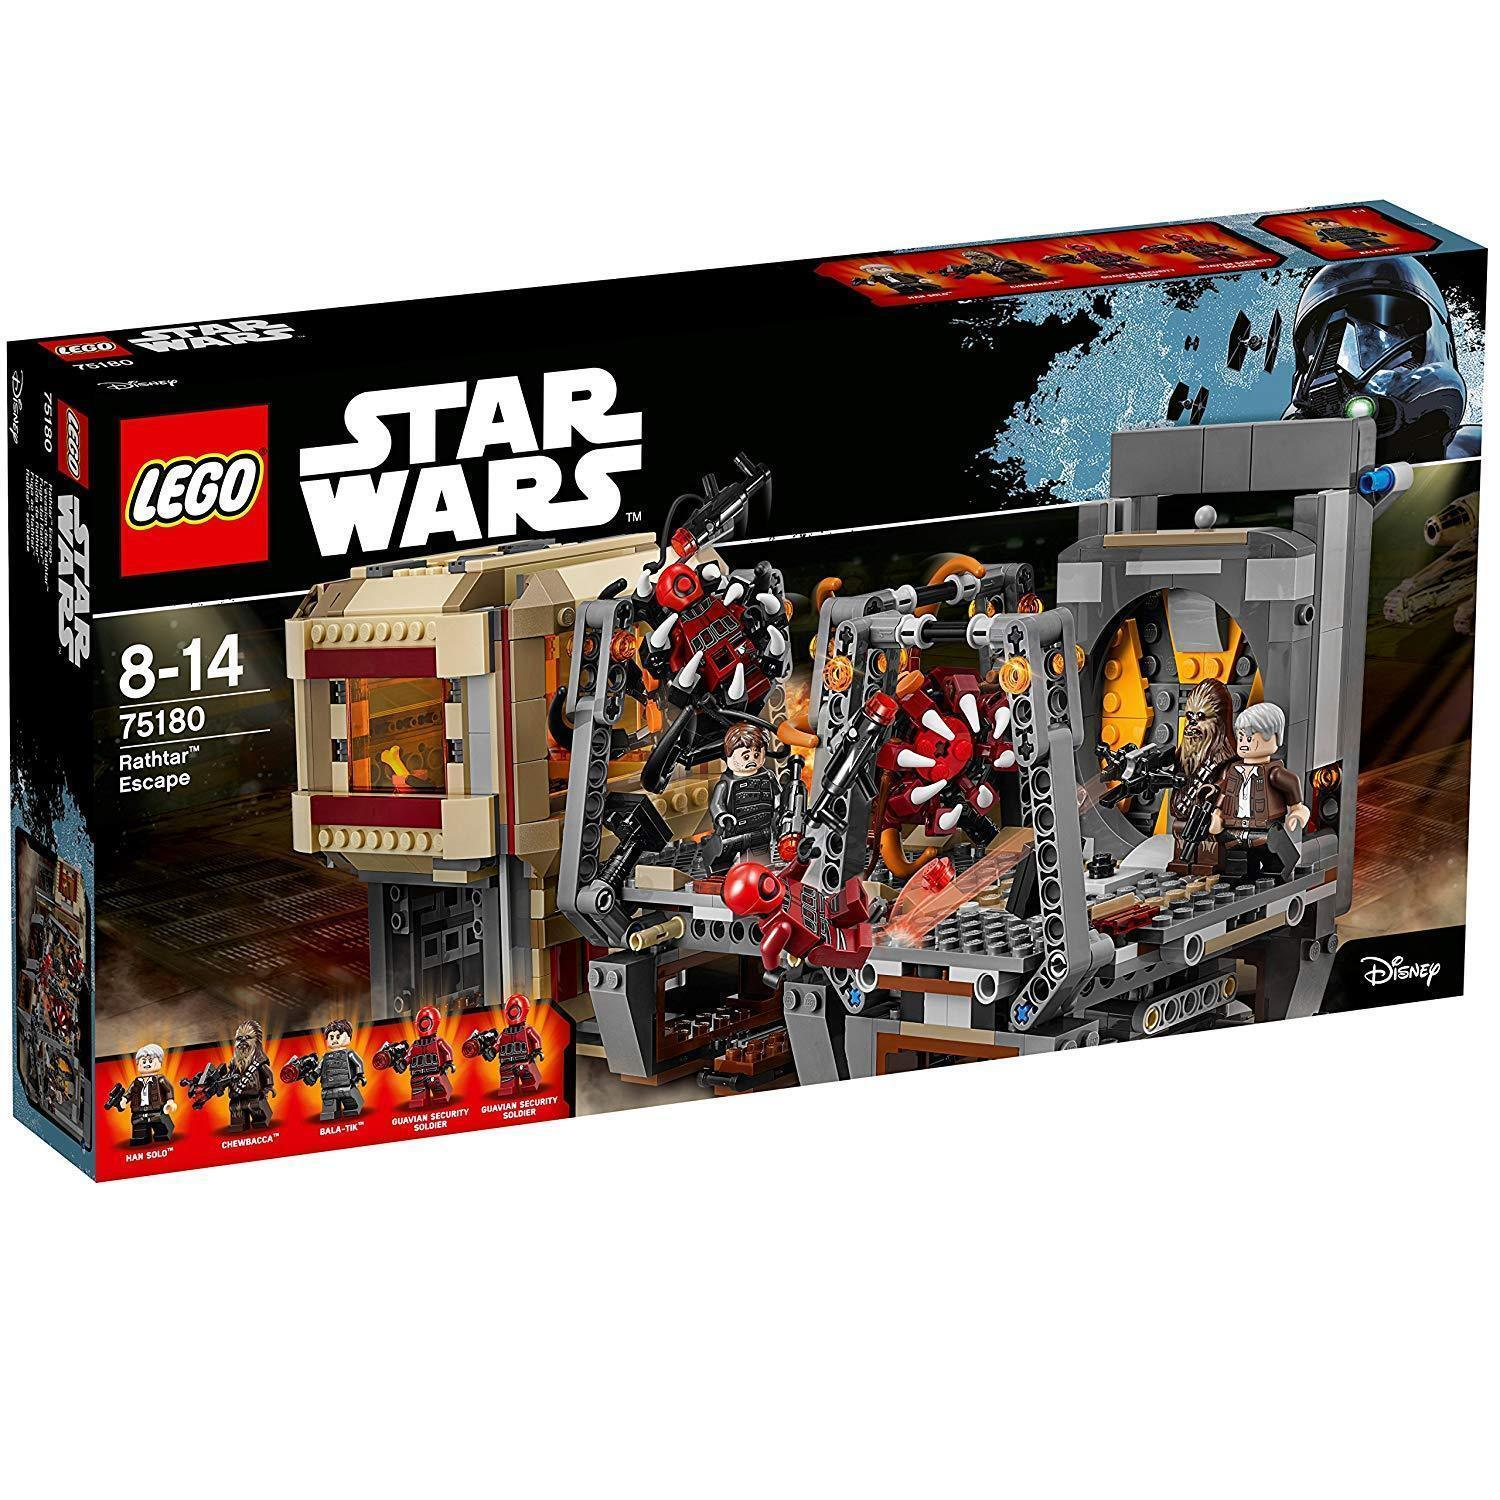 LEGO ® Star Wars ™ 75180 rathtar ™ Escape NUOVO NEW OVP MISB